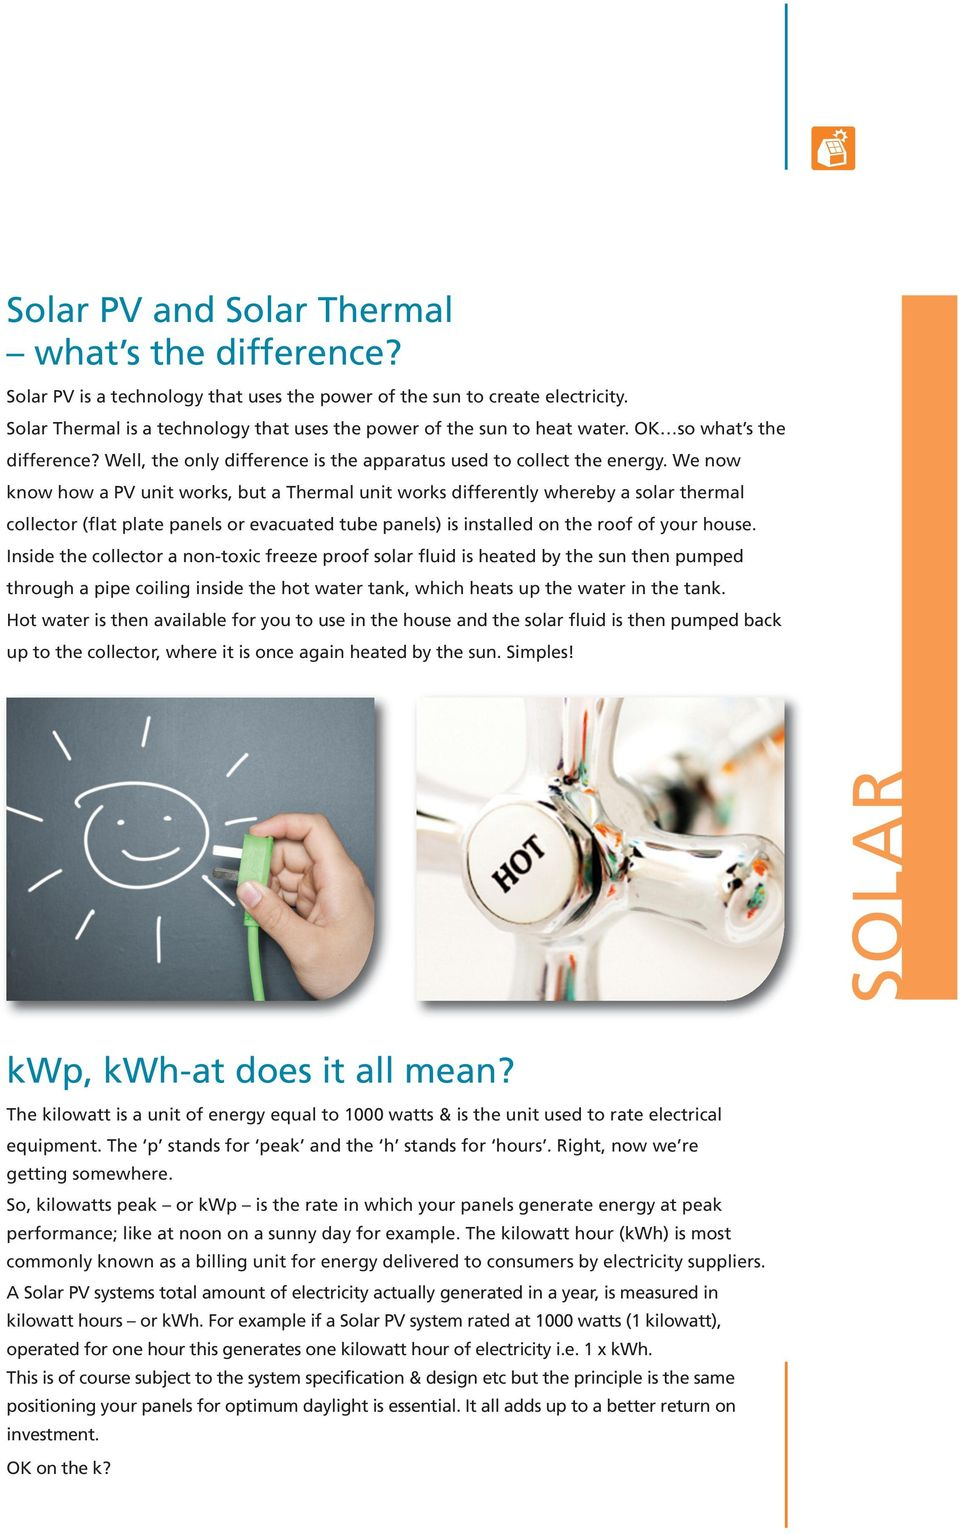 We now know how a PV unit works, but a Thermal unit works differently whereby a solar thermal collector (flat plate panels or evacuated tube panels) is installed on the roof of your house.